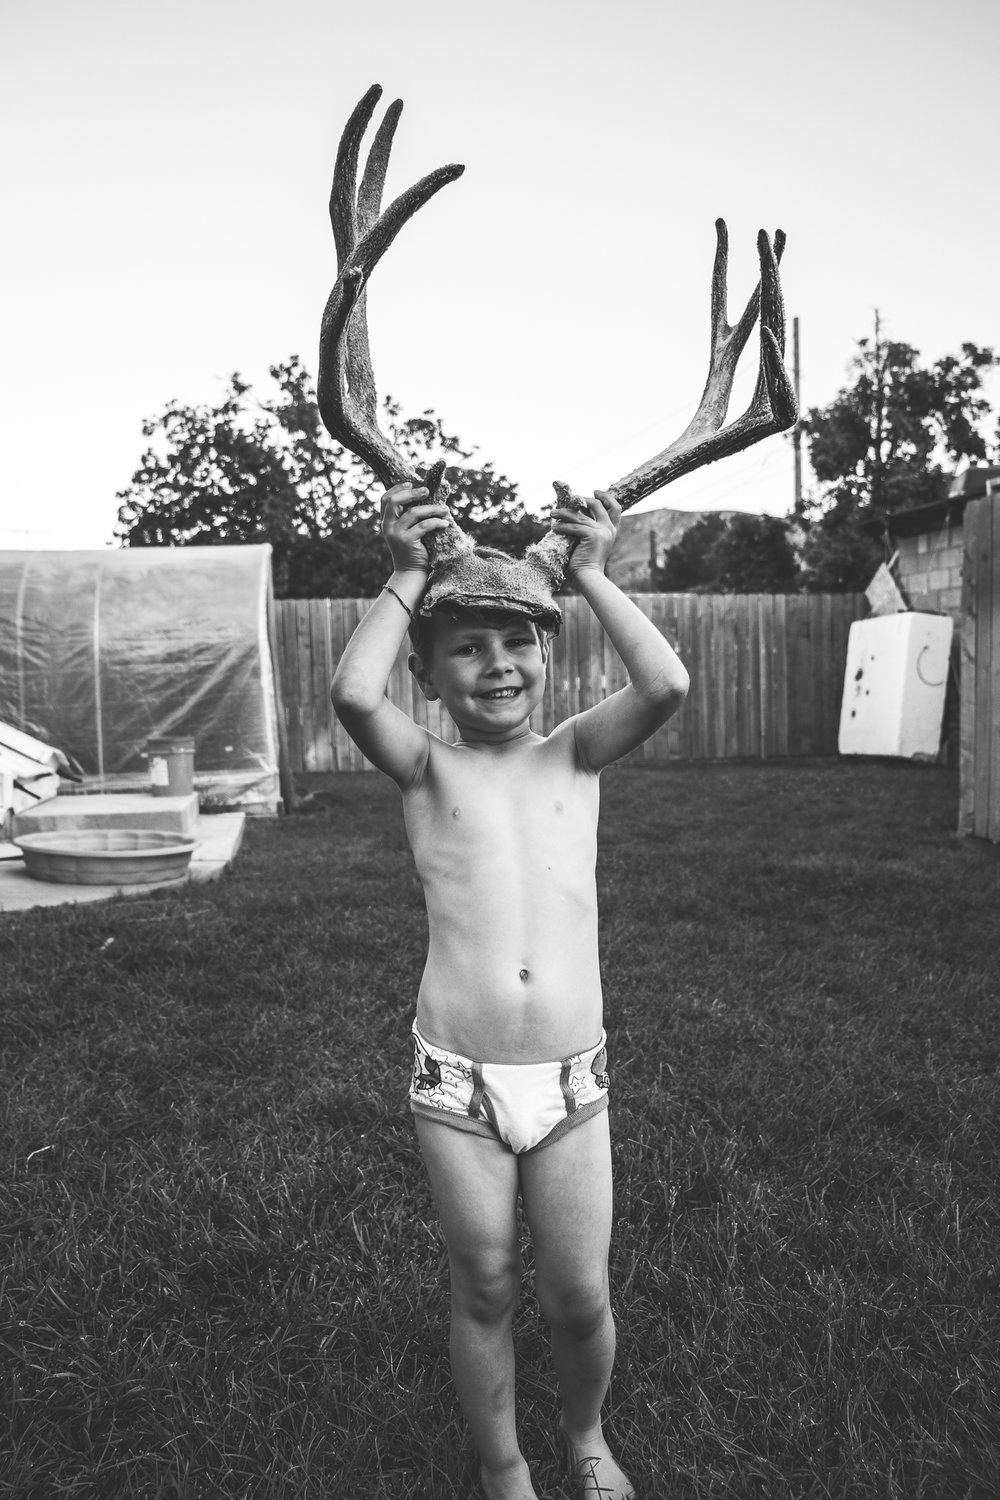 Boy with Deer antlers